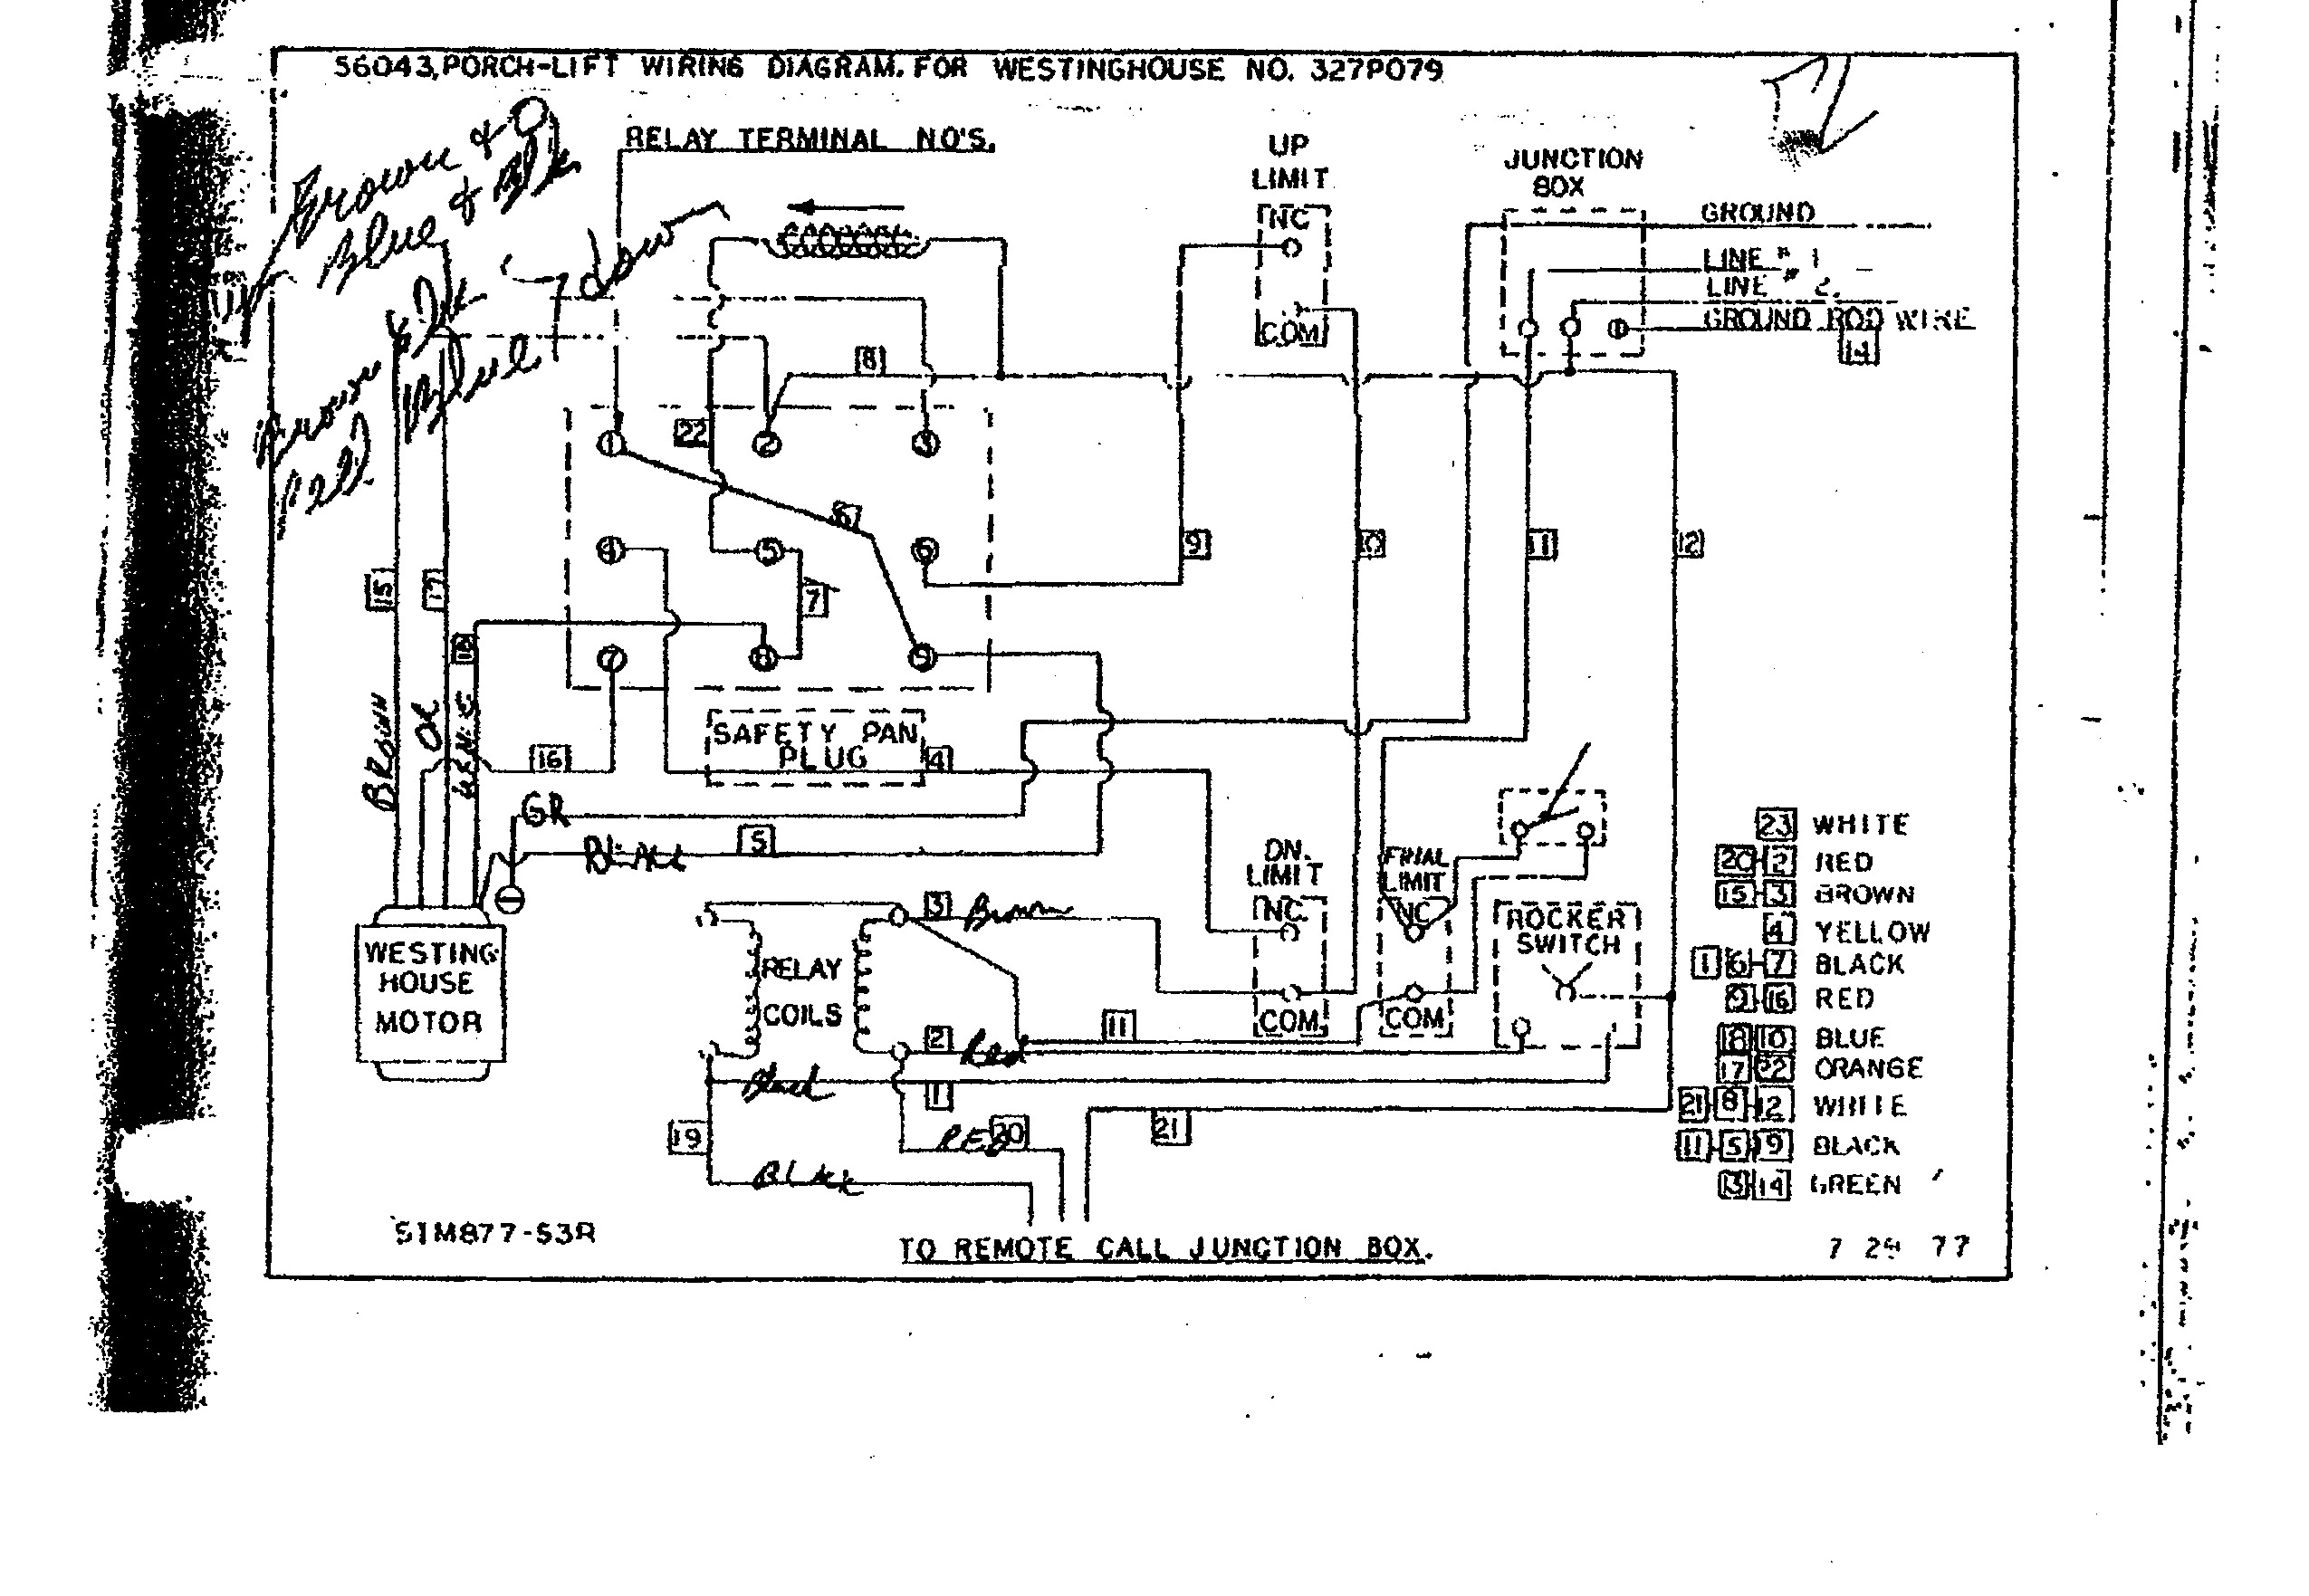 Elevator Wiring Diagram - 240 Single Phase Wiring Diagram Ge Tl412c for Wiring  Diagram Schematics | Hydraulic Elevator Wiring Diagram Mce Controller |  | Wiring Diagram Schematics